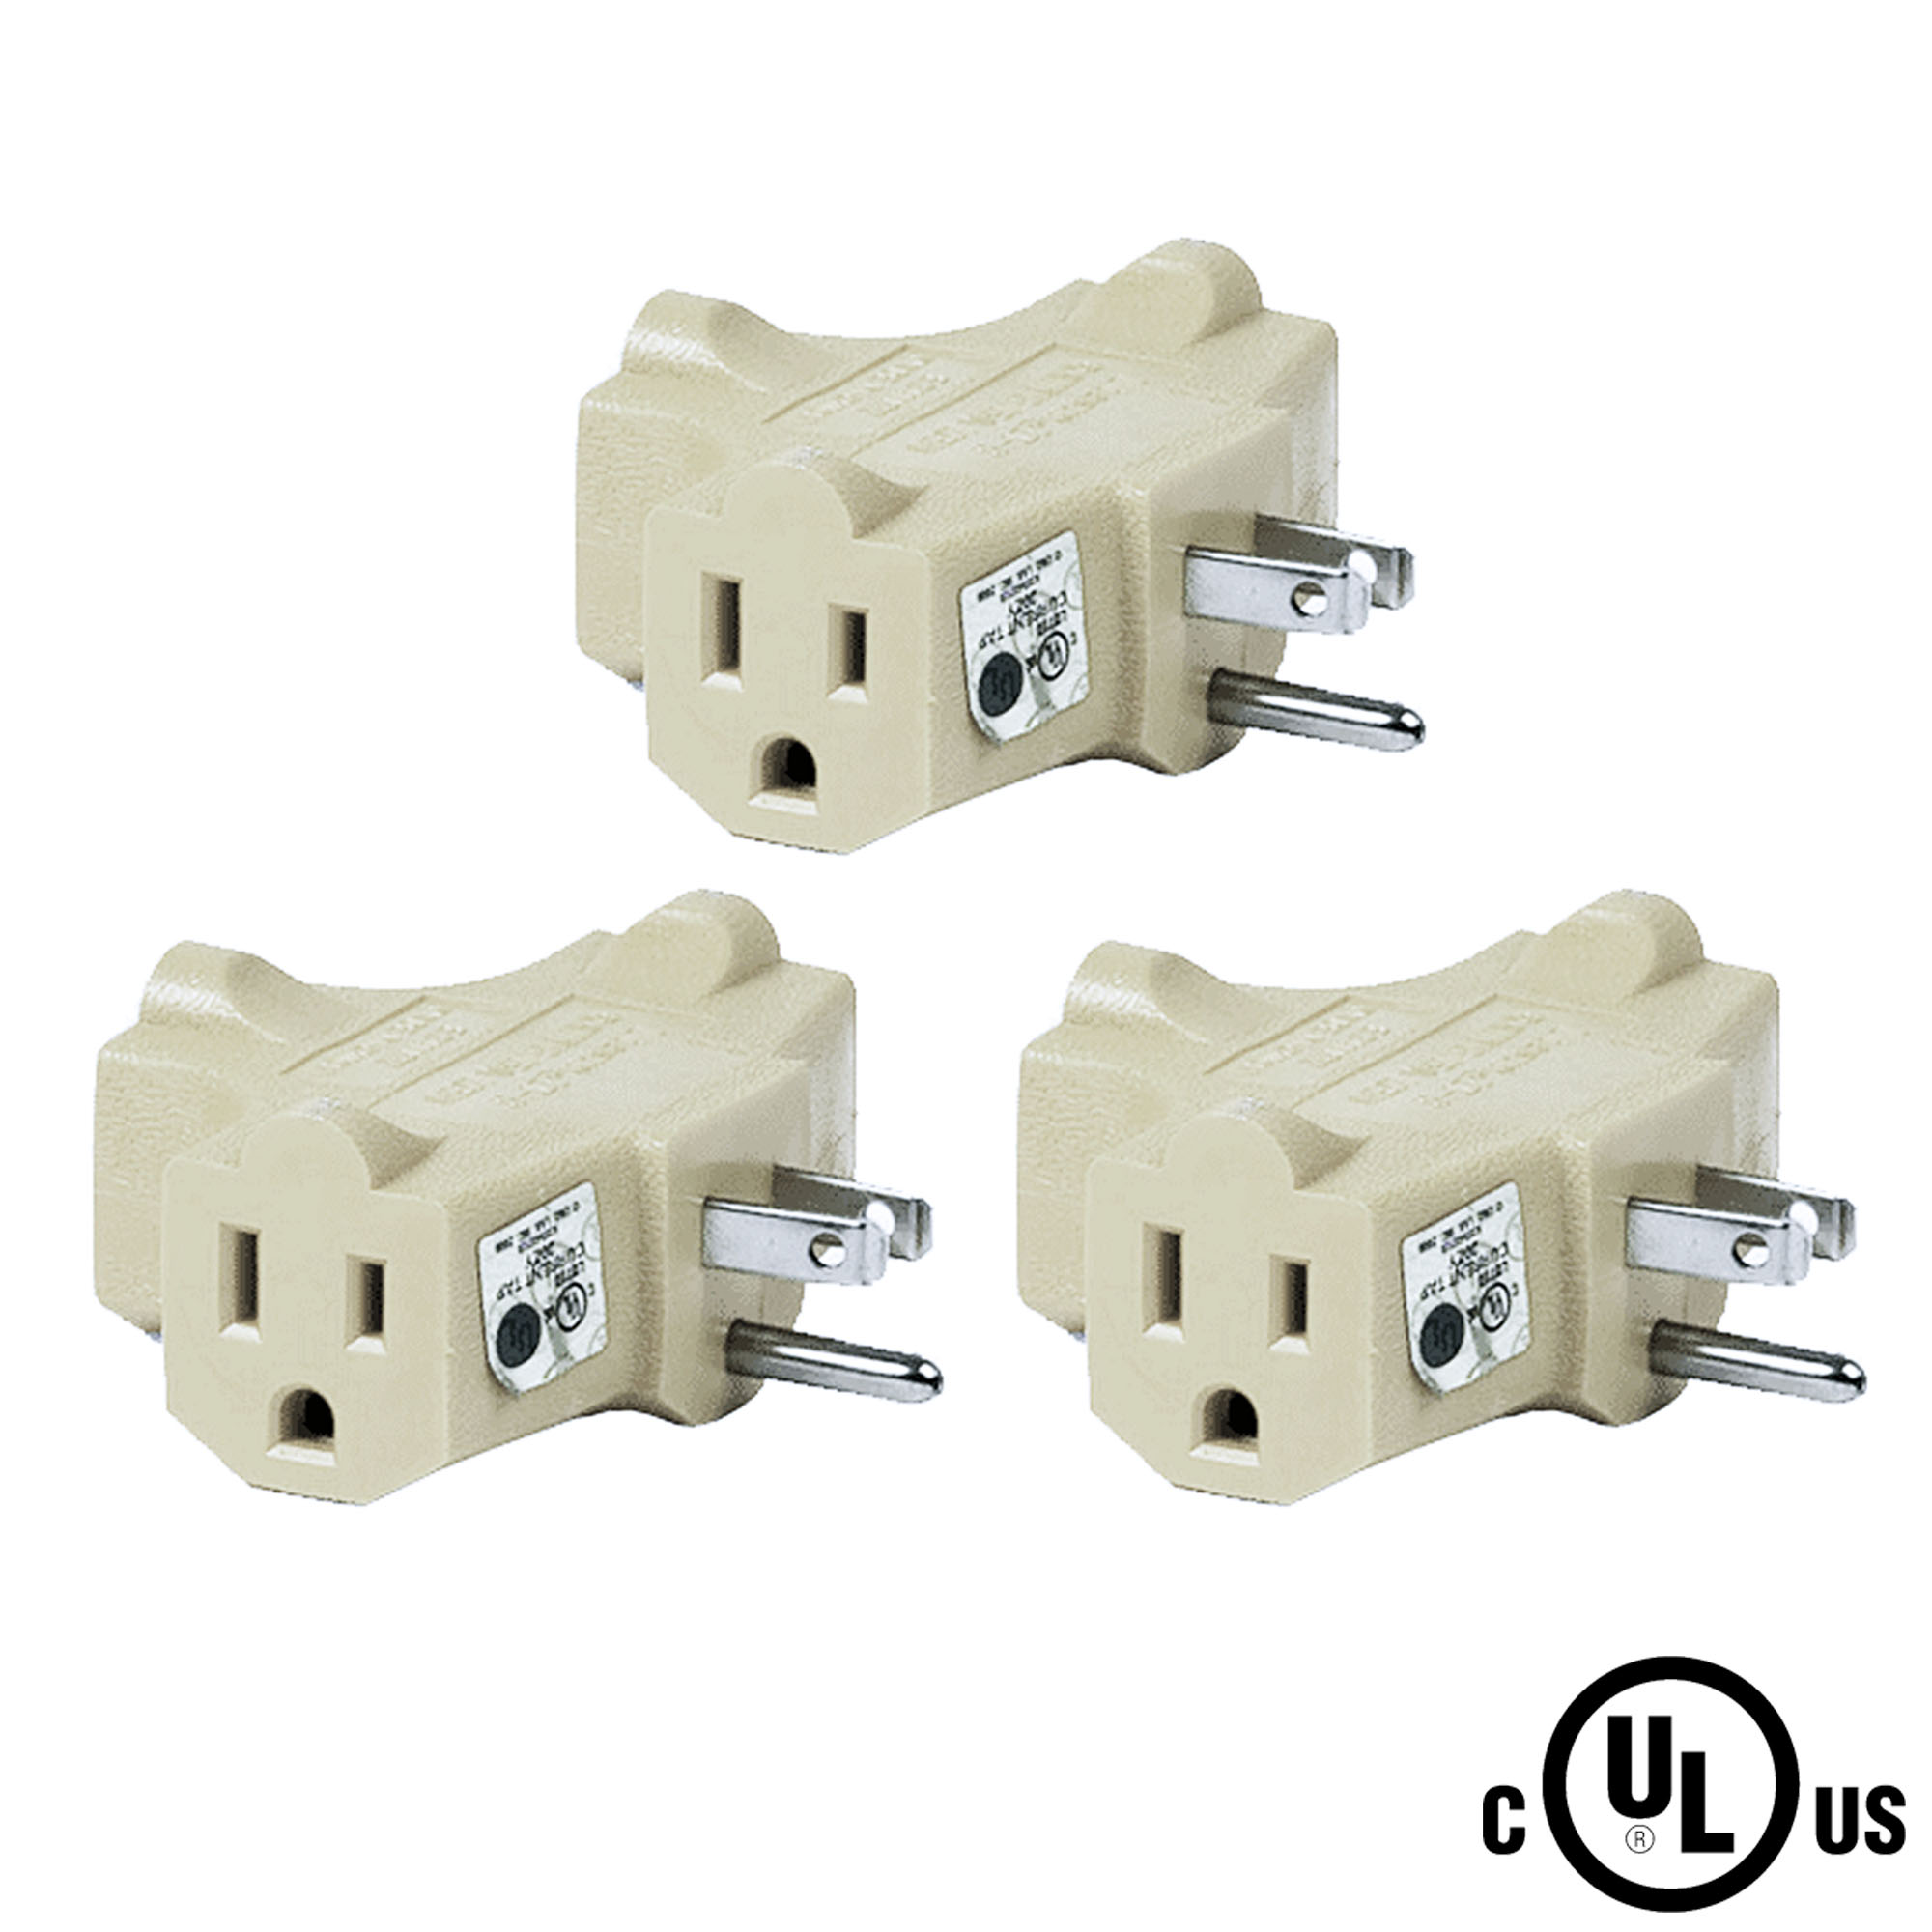 (3-pack) Uninex T-shape 3 Way Outlet Heavy Duty Grounded Wall Plug Tap Adapter Beige